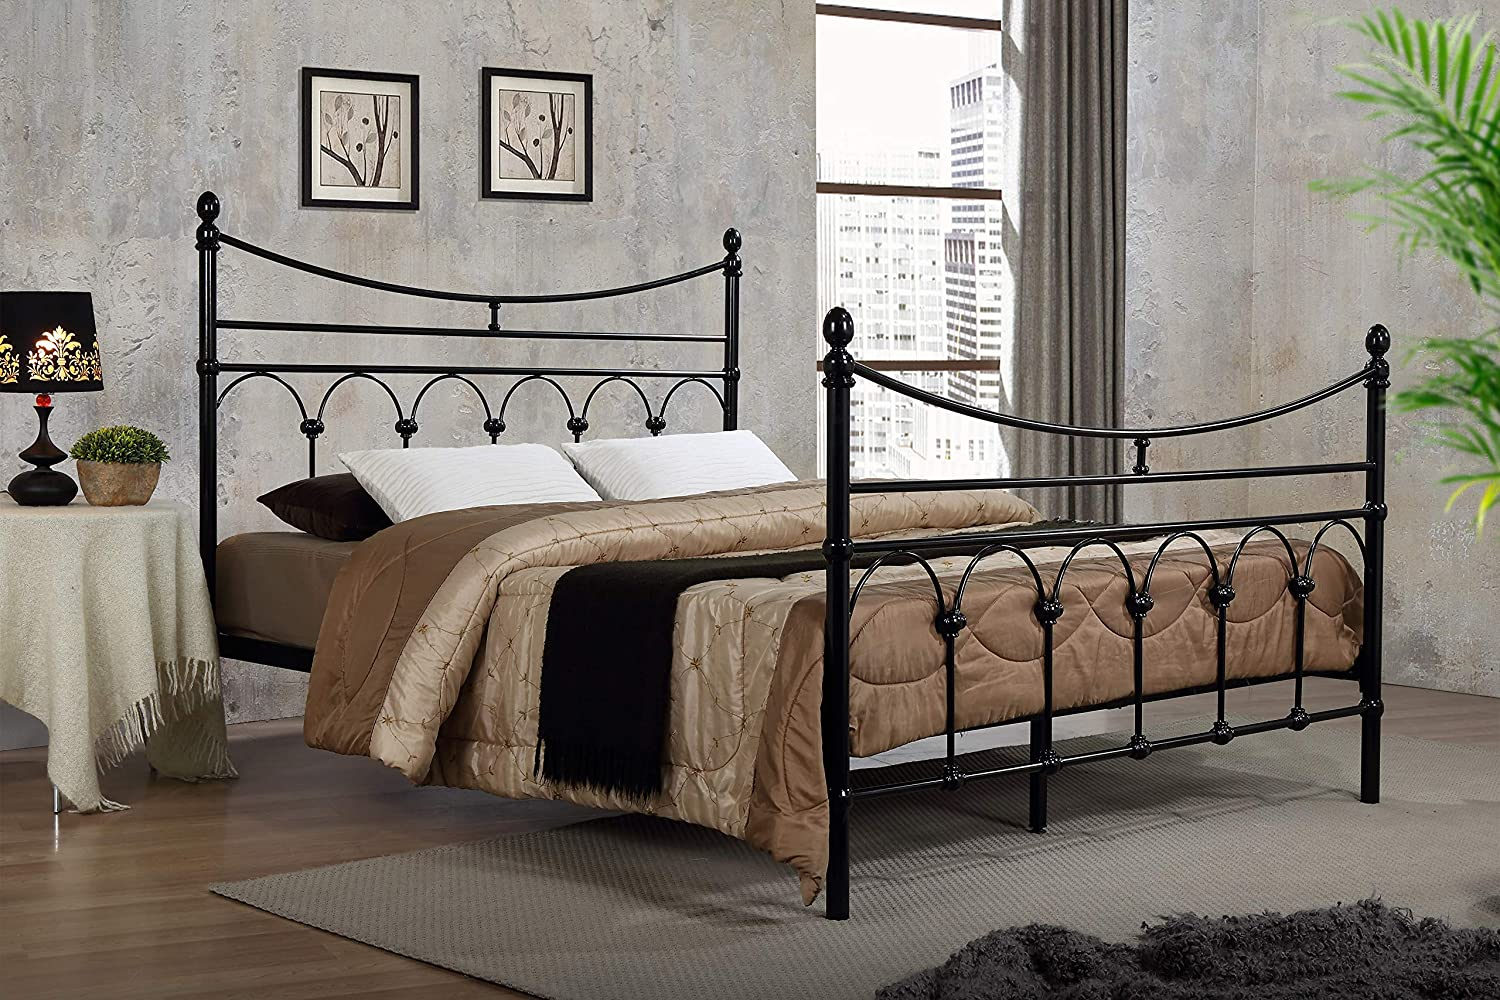 Atlanta Victorian Style Metal Bed Frame Black Double King Size Traditional Bedstead Bedroom Furniture (5FT King Size) ROYALE COMFORT